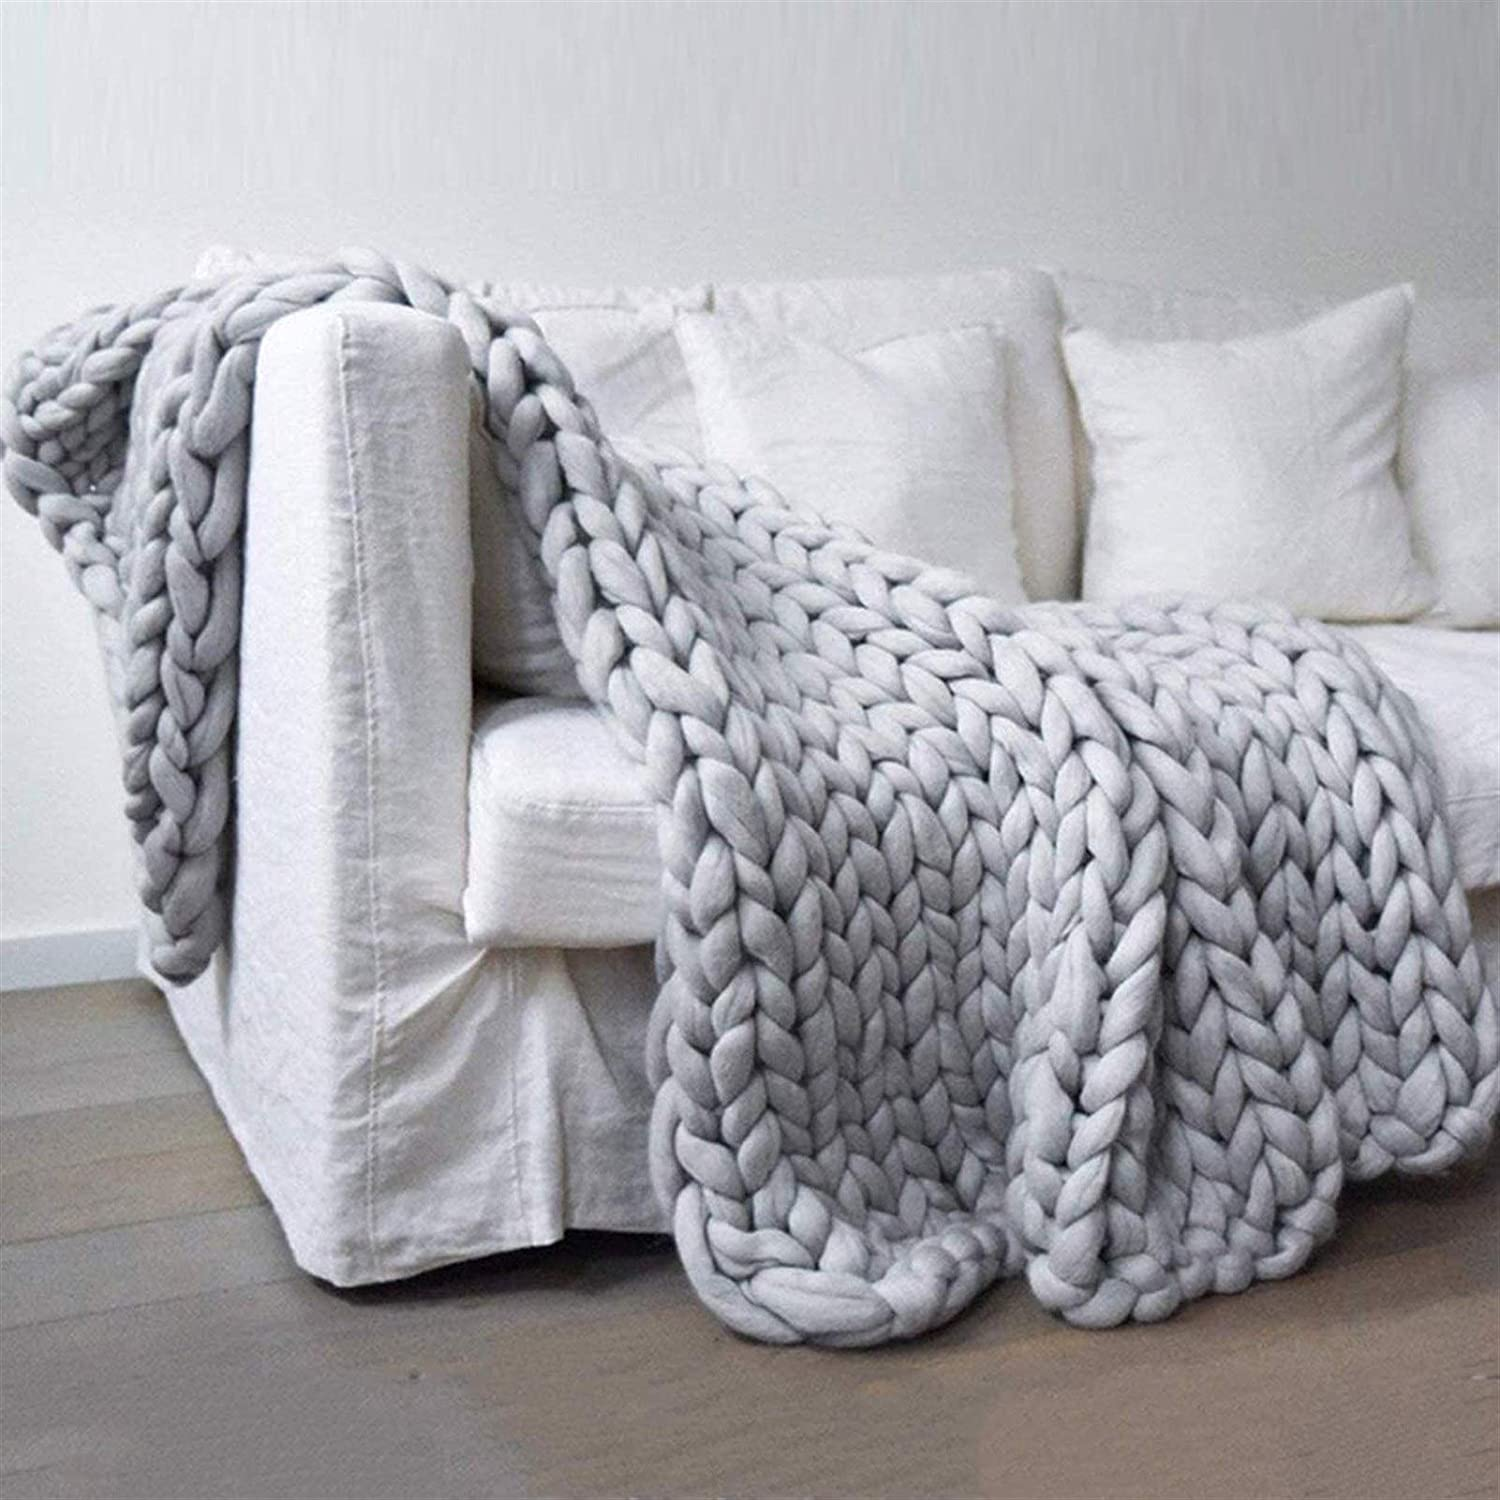 JGYZD Hand Knitting Blanket - Soft Decor Throw Surprise price Beautiful Home Cheap bargain